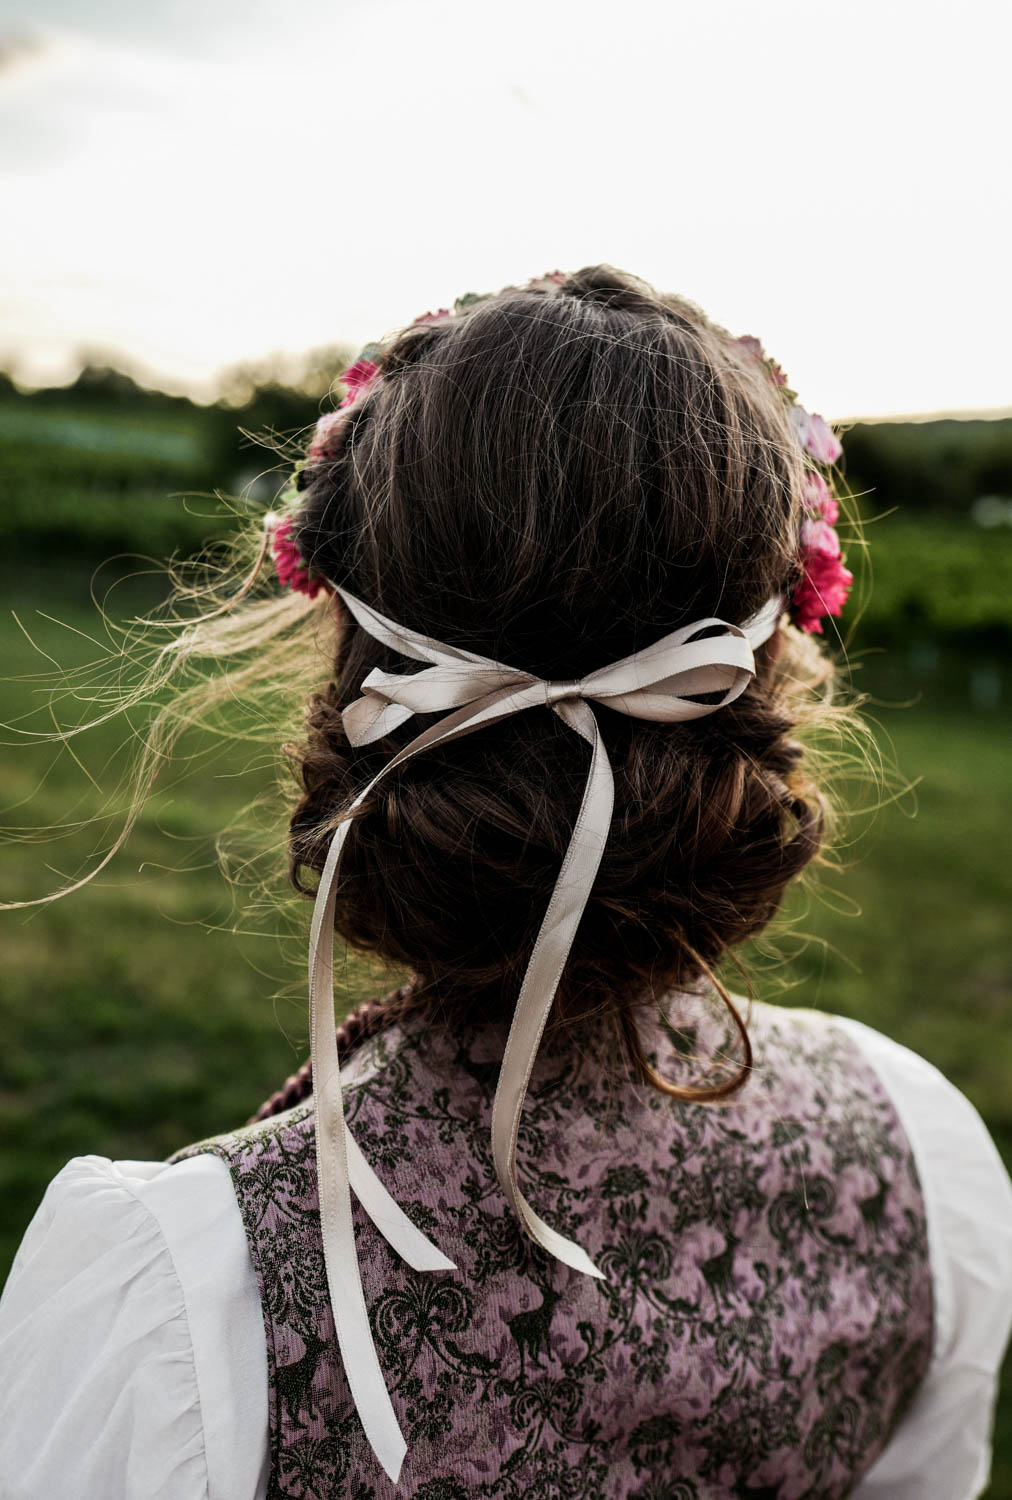 Trachtenkollektion_WeAreFlowergirls_Flowercrown_web-1020841.jpg